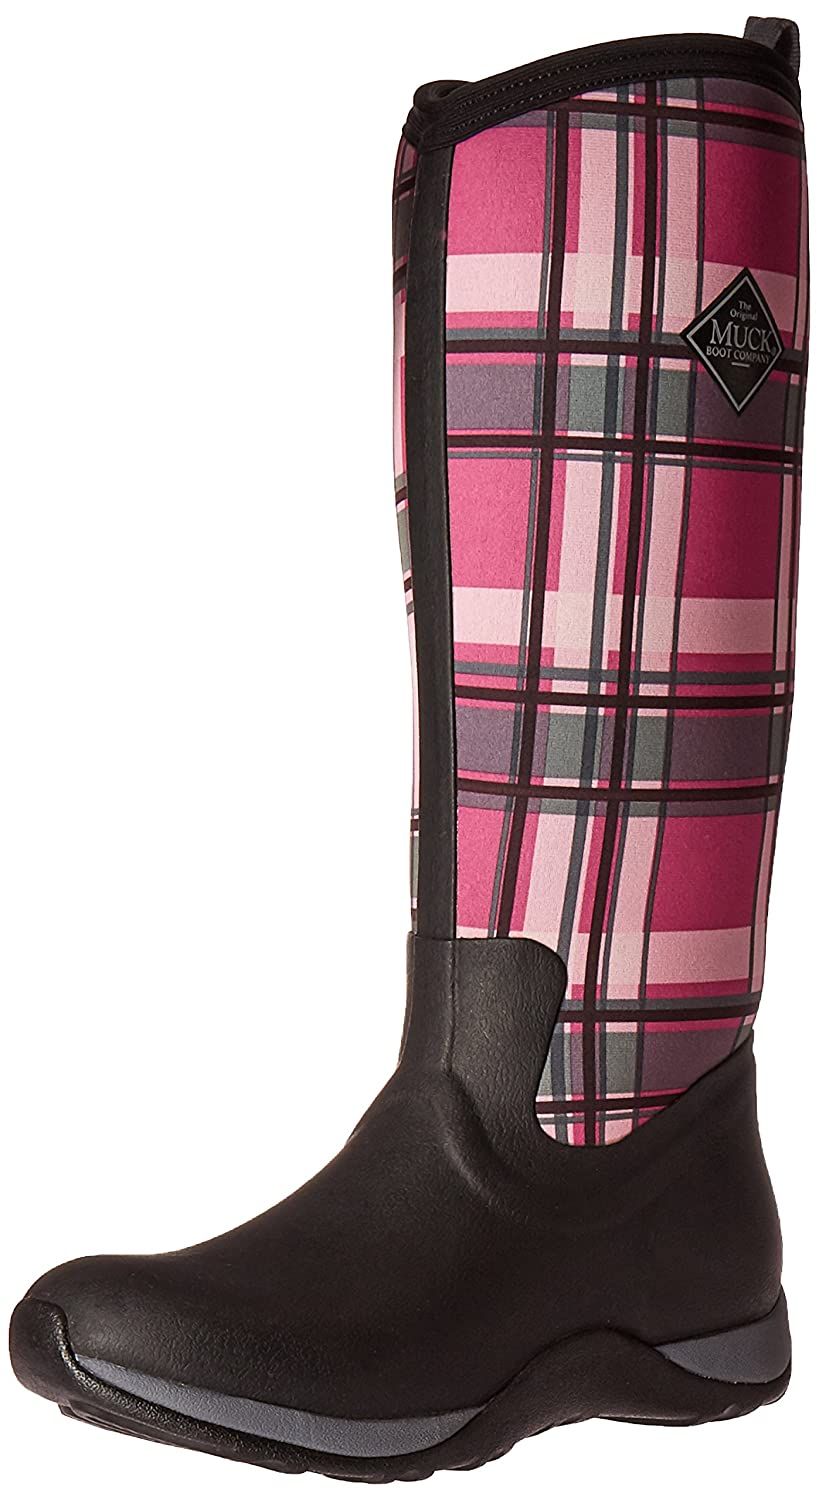 Muck Boot Women's Arctic Adventure Tall Snow Boot B00TT3G2J2 6 B(M) US|Black/Pink Plaid